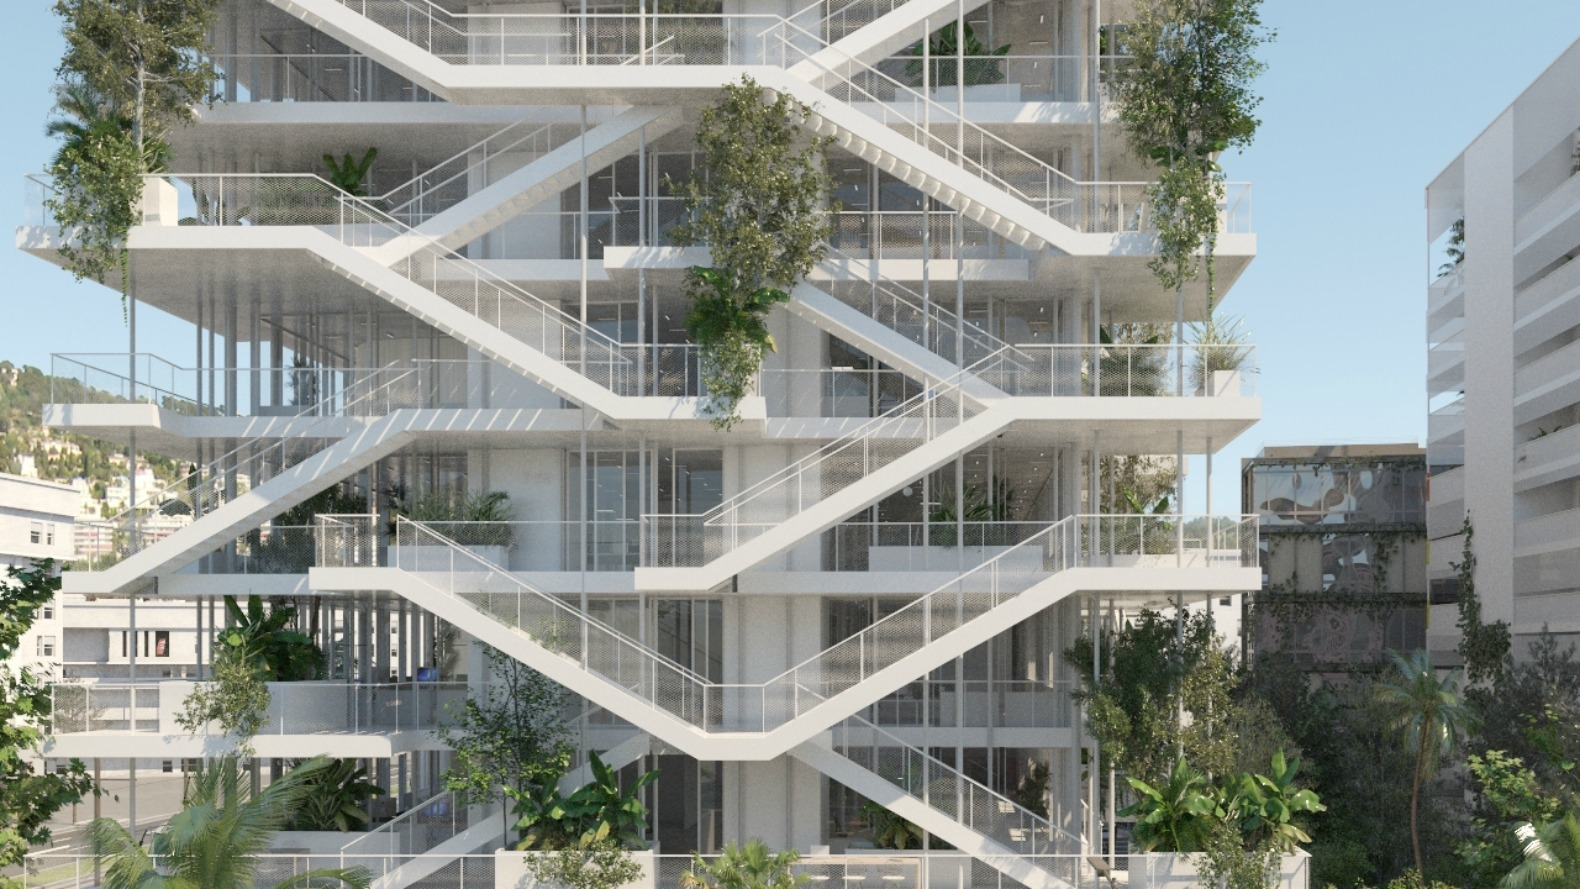 Architectural Design Of Residential Building French Architects Unveil Plans For Bio Climatic Inside Out